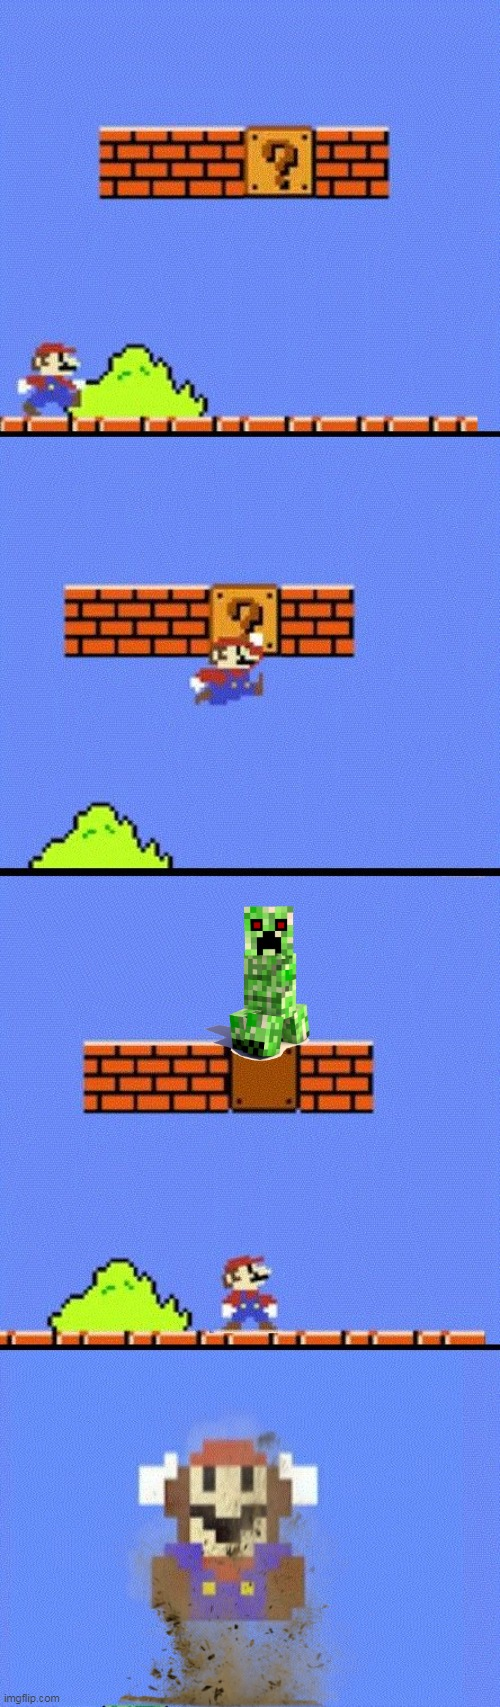 NOT WHAT HE EXPECTED | image tagged in mario dies,super mario bros,super mario,minecraft,creeper | made w/ Imgflip meme maker